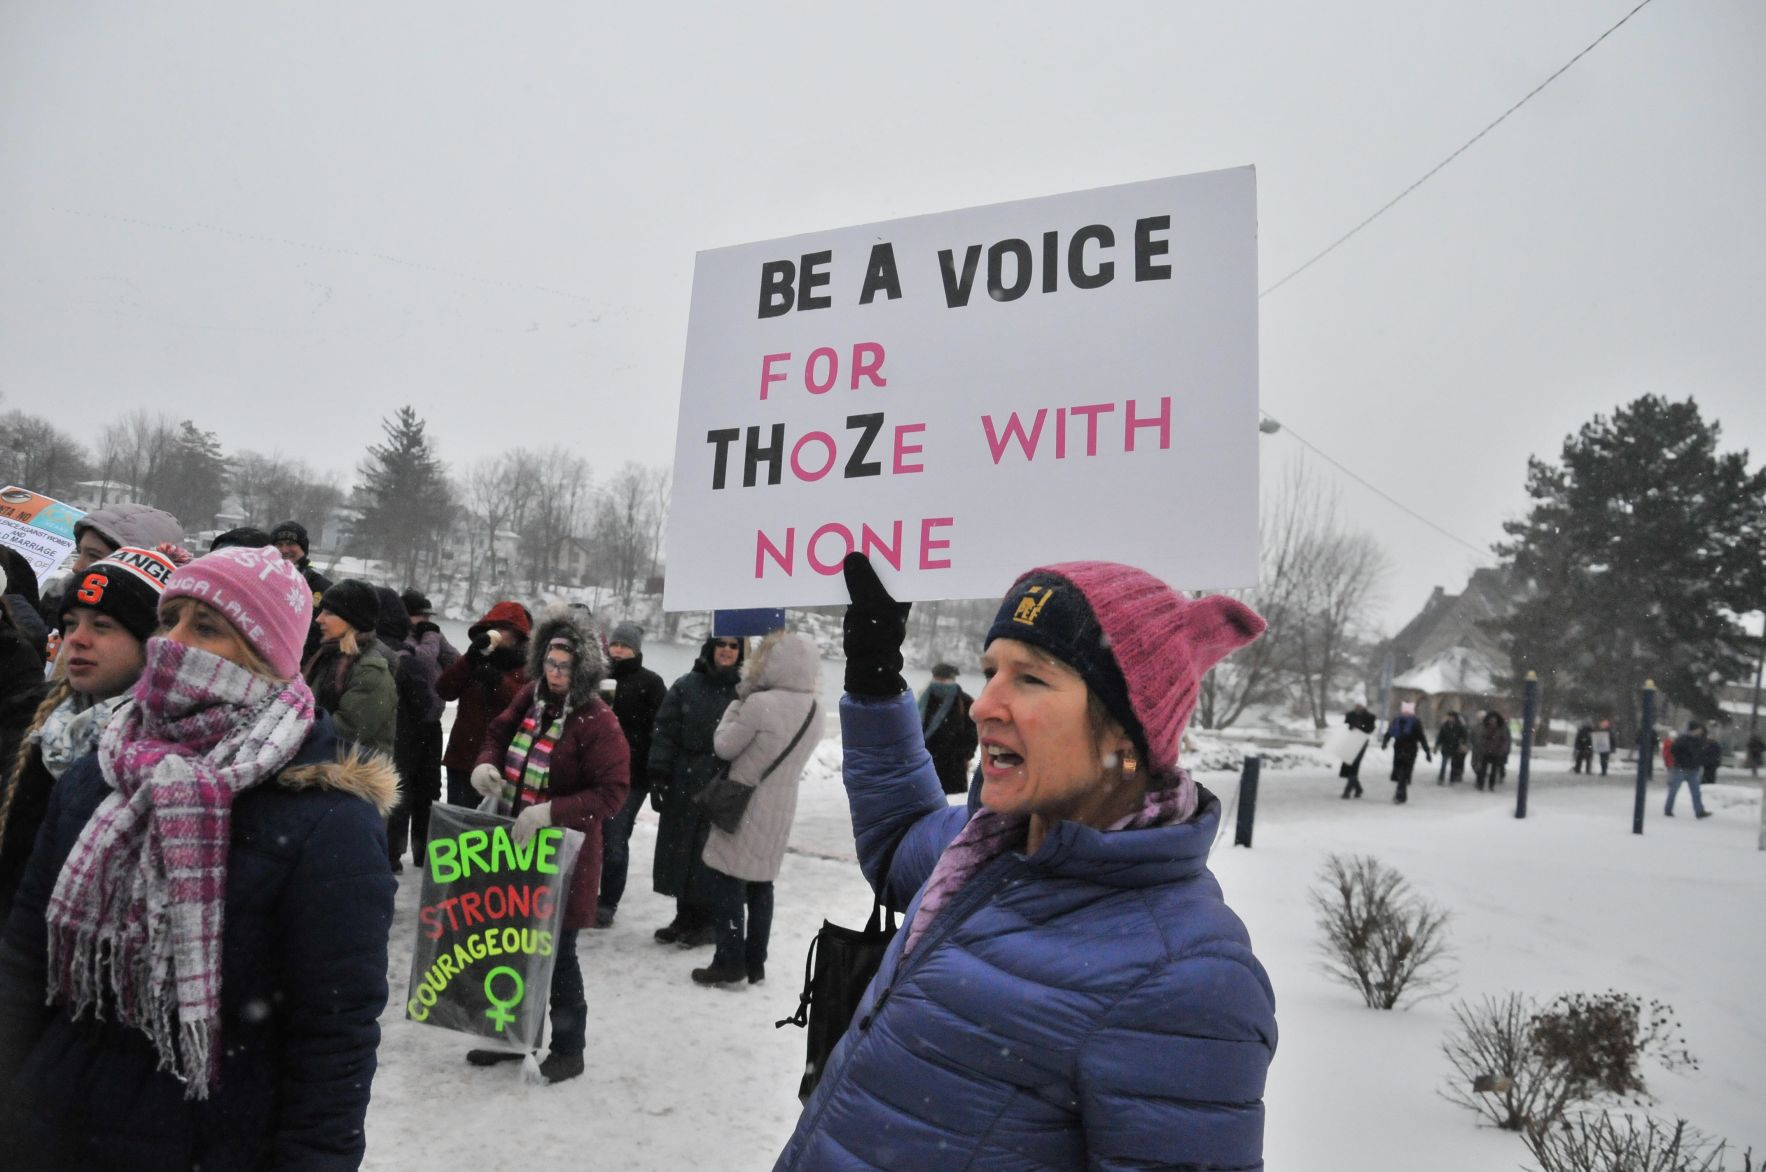 Citaten Seneca Falls : Share your voice march in seneca falls supports women s rights